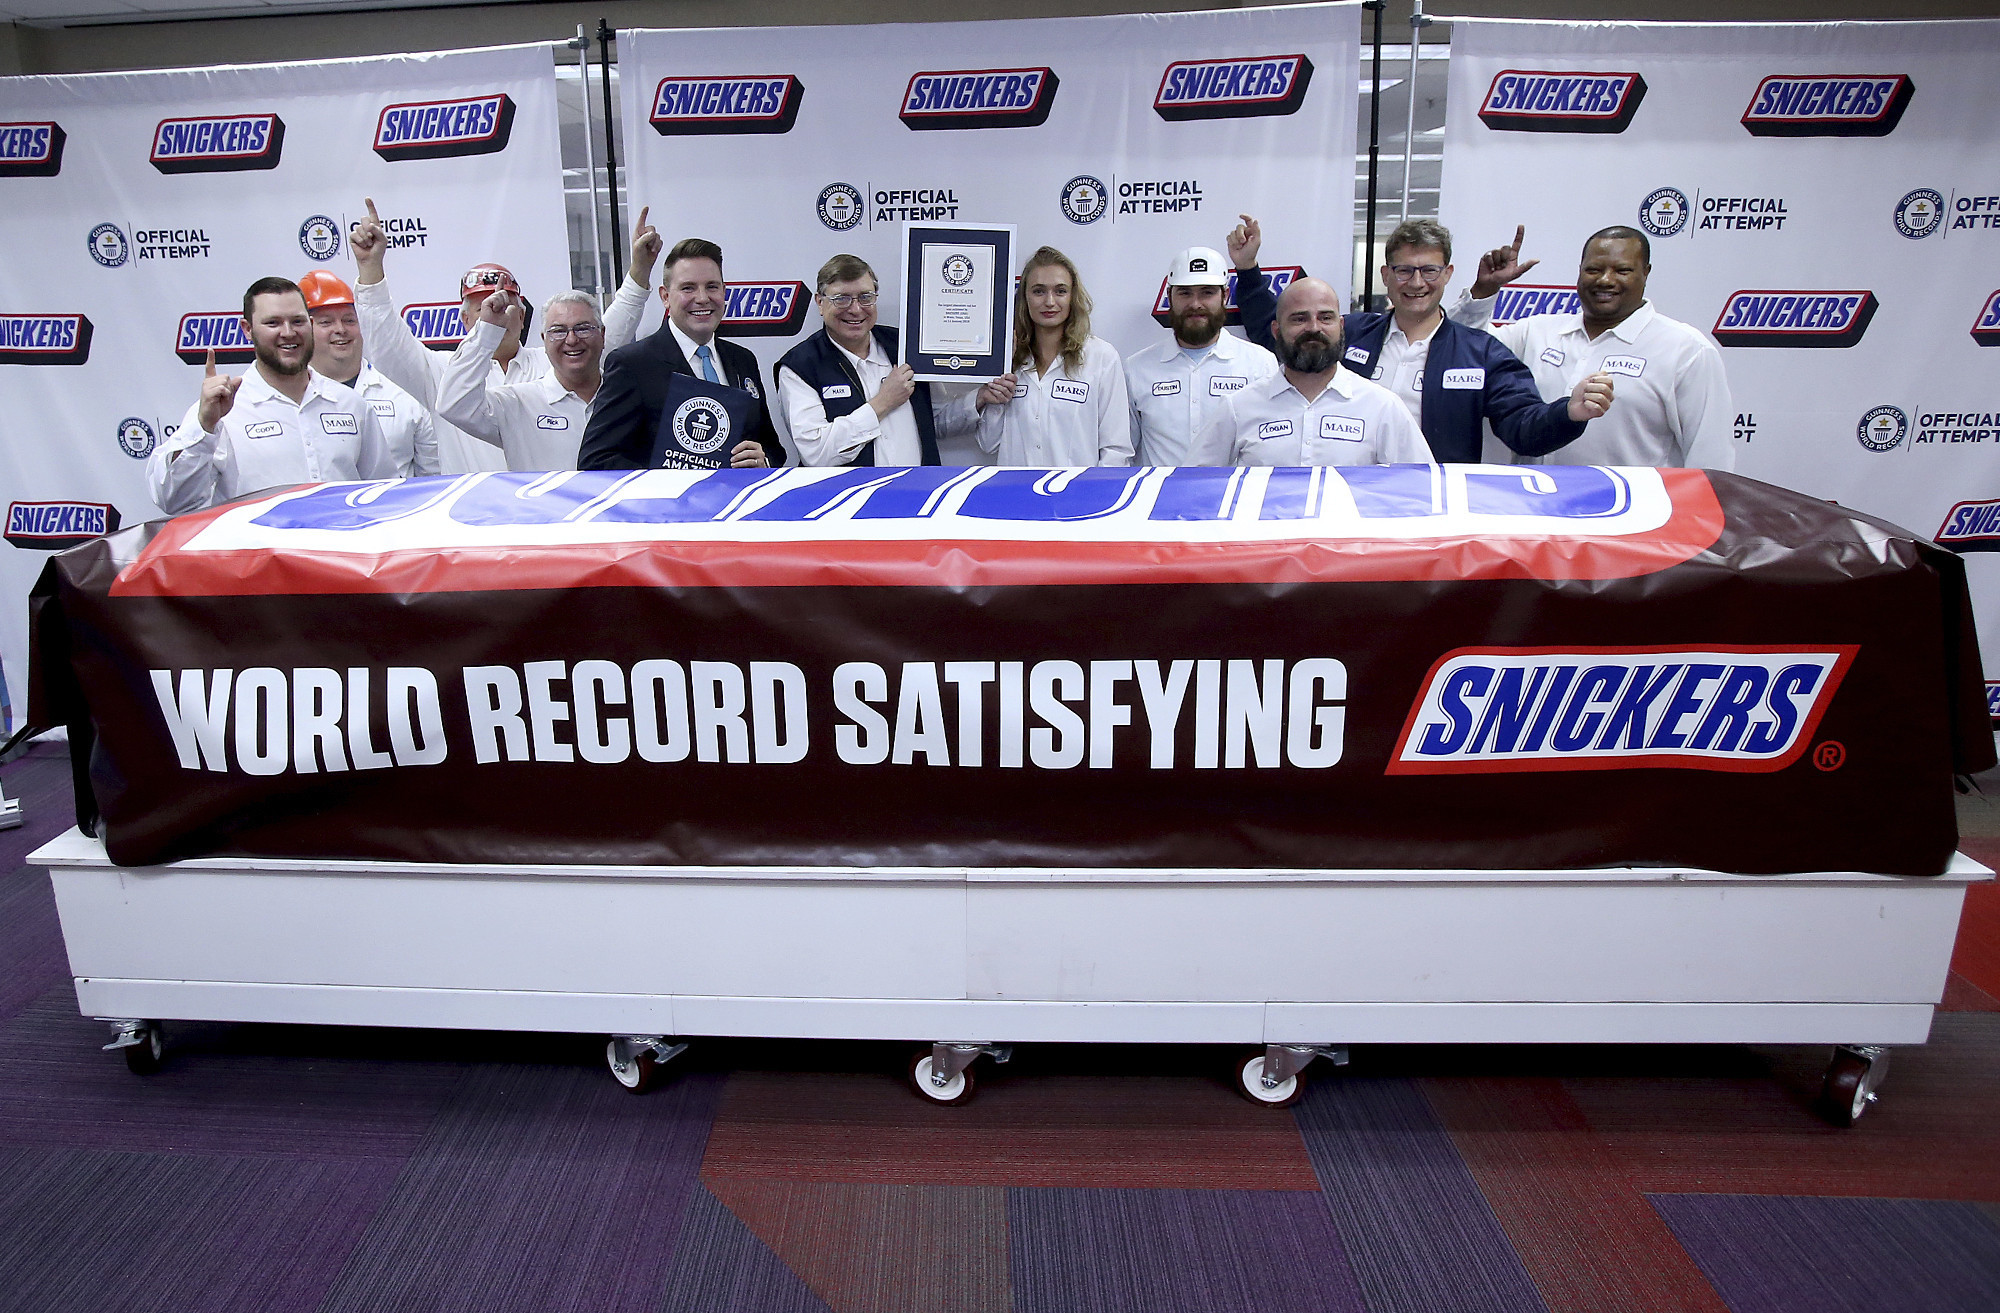 Snickers bar weighing 4,700 pounds is world's largest, says Guinness